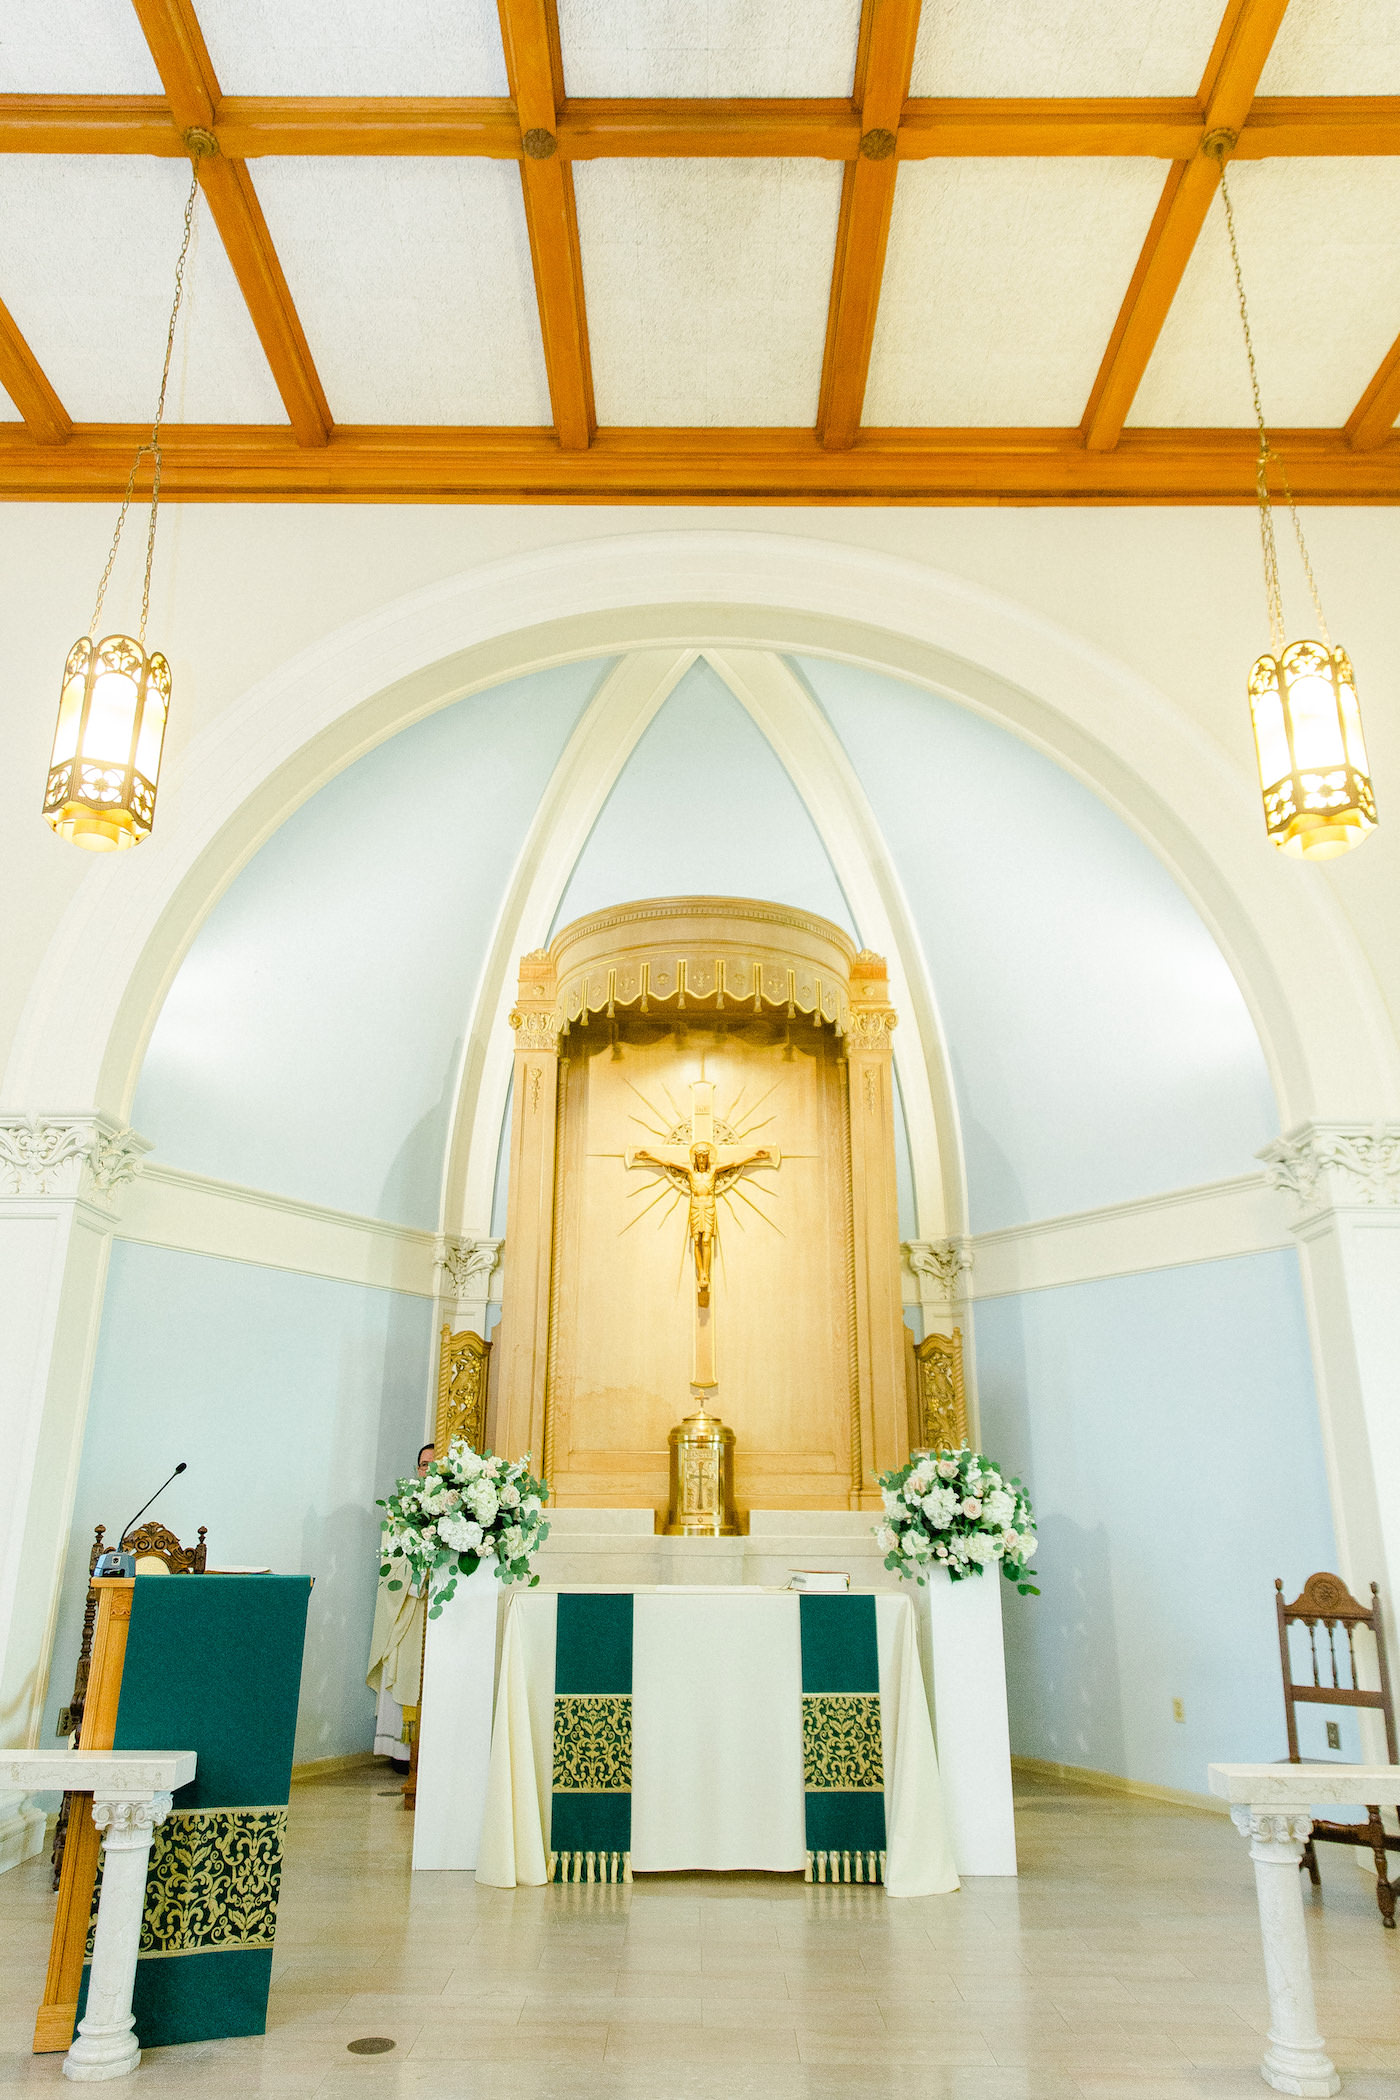 Traditional Florida Wedding Ceremony Inside Church, Catholic Ceremony Altar and Pulpit, Decorated with White, Ivory, and Blush Pink Flowers with Greenery | All Saints Academy in South Tampa | Tampa Bay Wedding Planner Breezin' Weddings